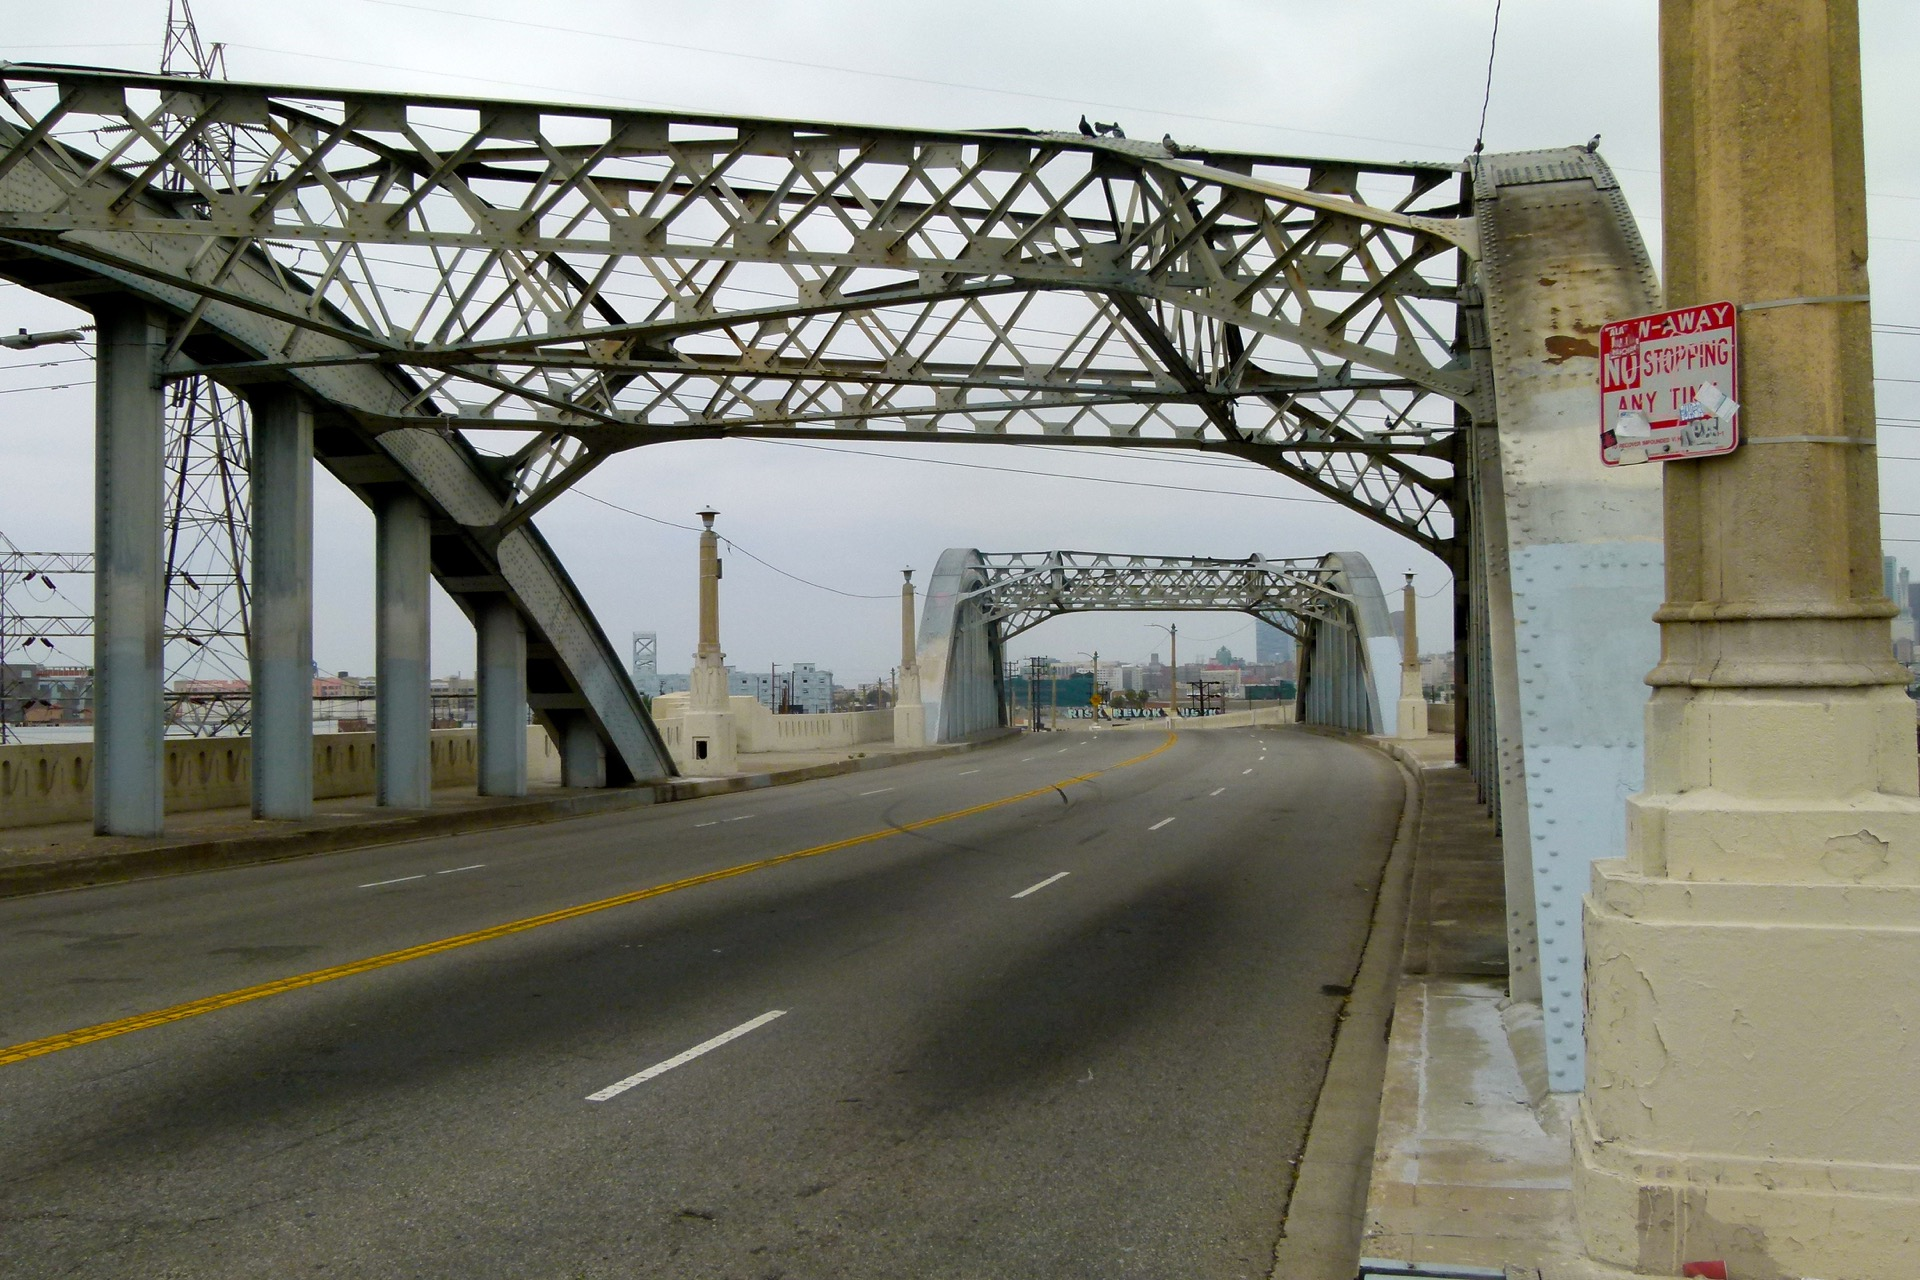 6th_street_bridge_025.jpg